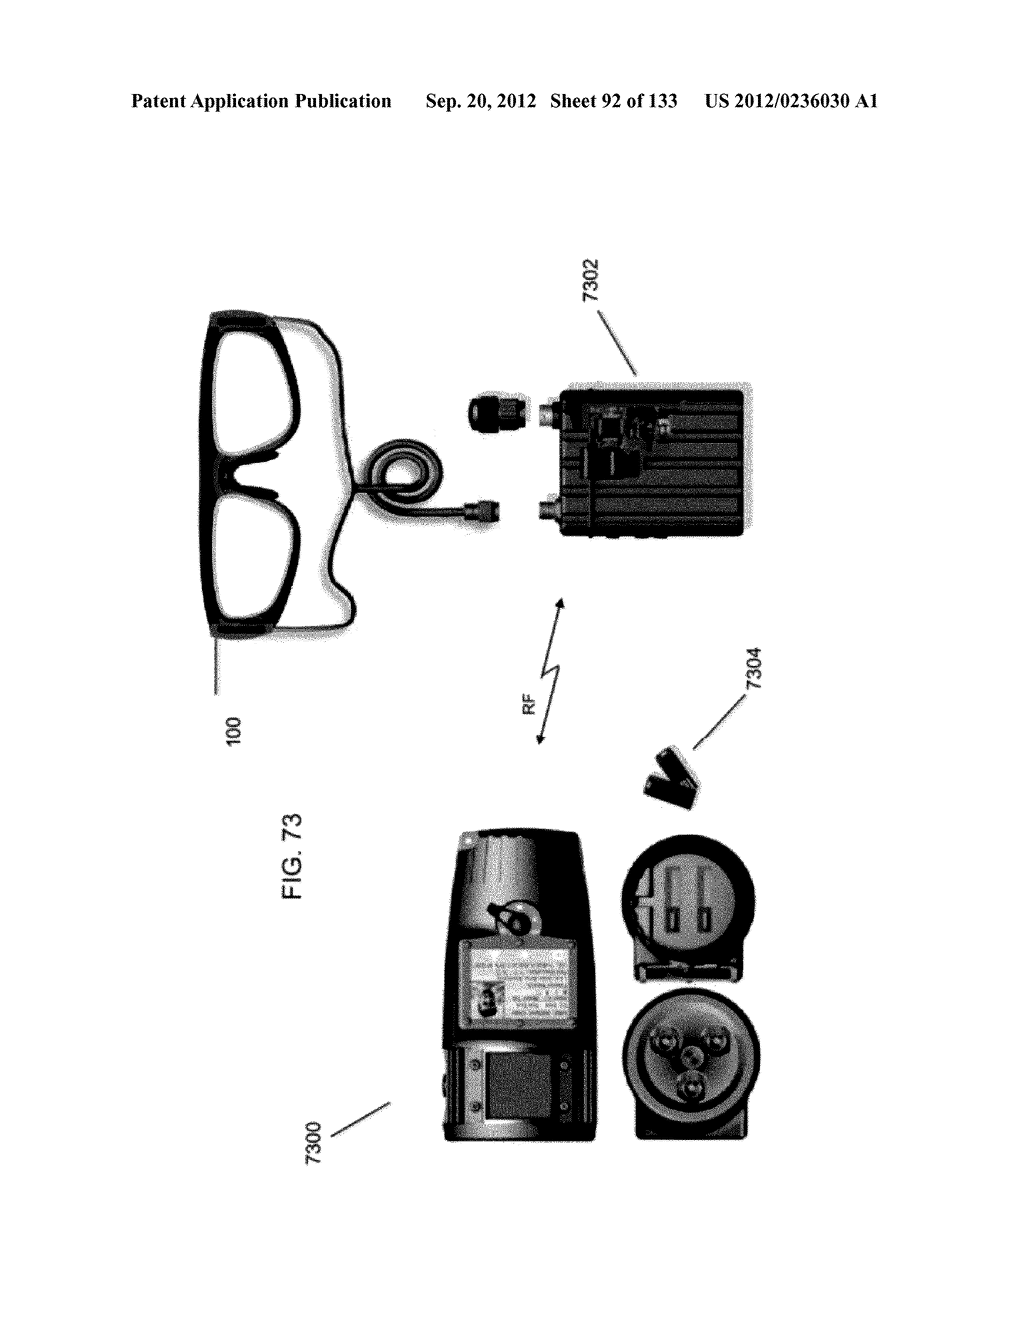 SEE-THROUGH NEAR-EYE DISPLAY GLASSES INCLUDING A MODULAR IMAGE SOURCE - diagram, schematic, and image 93